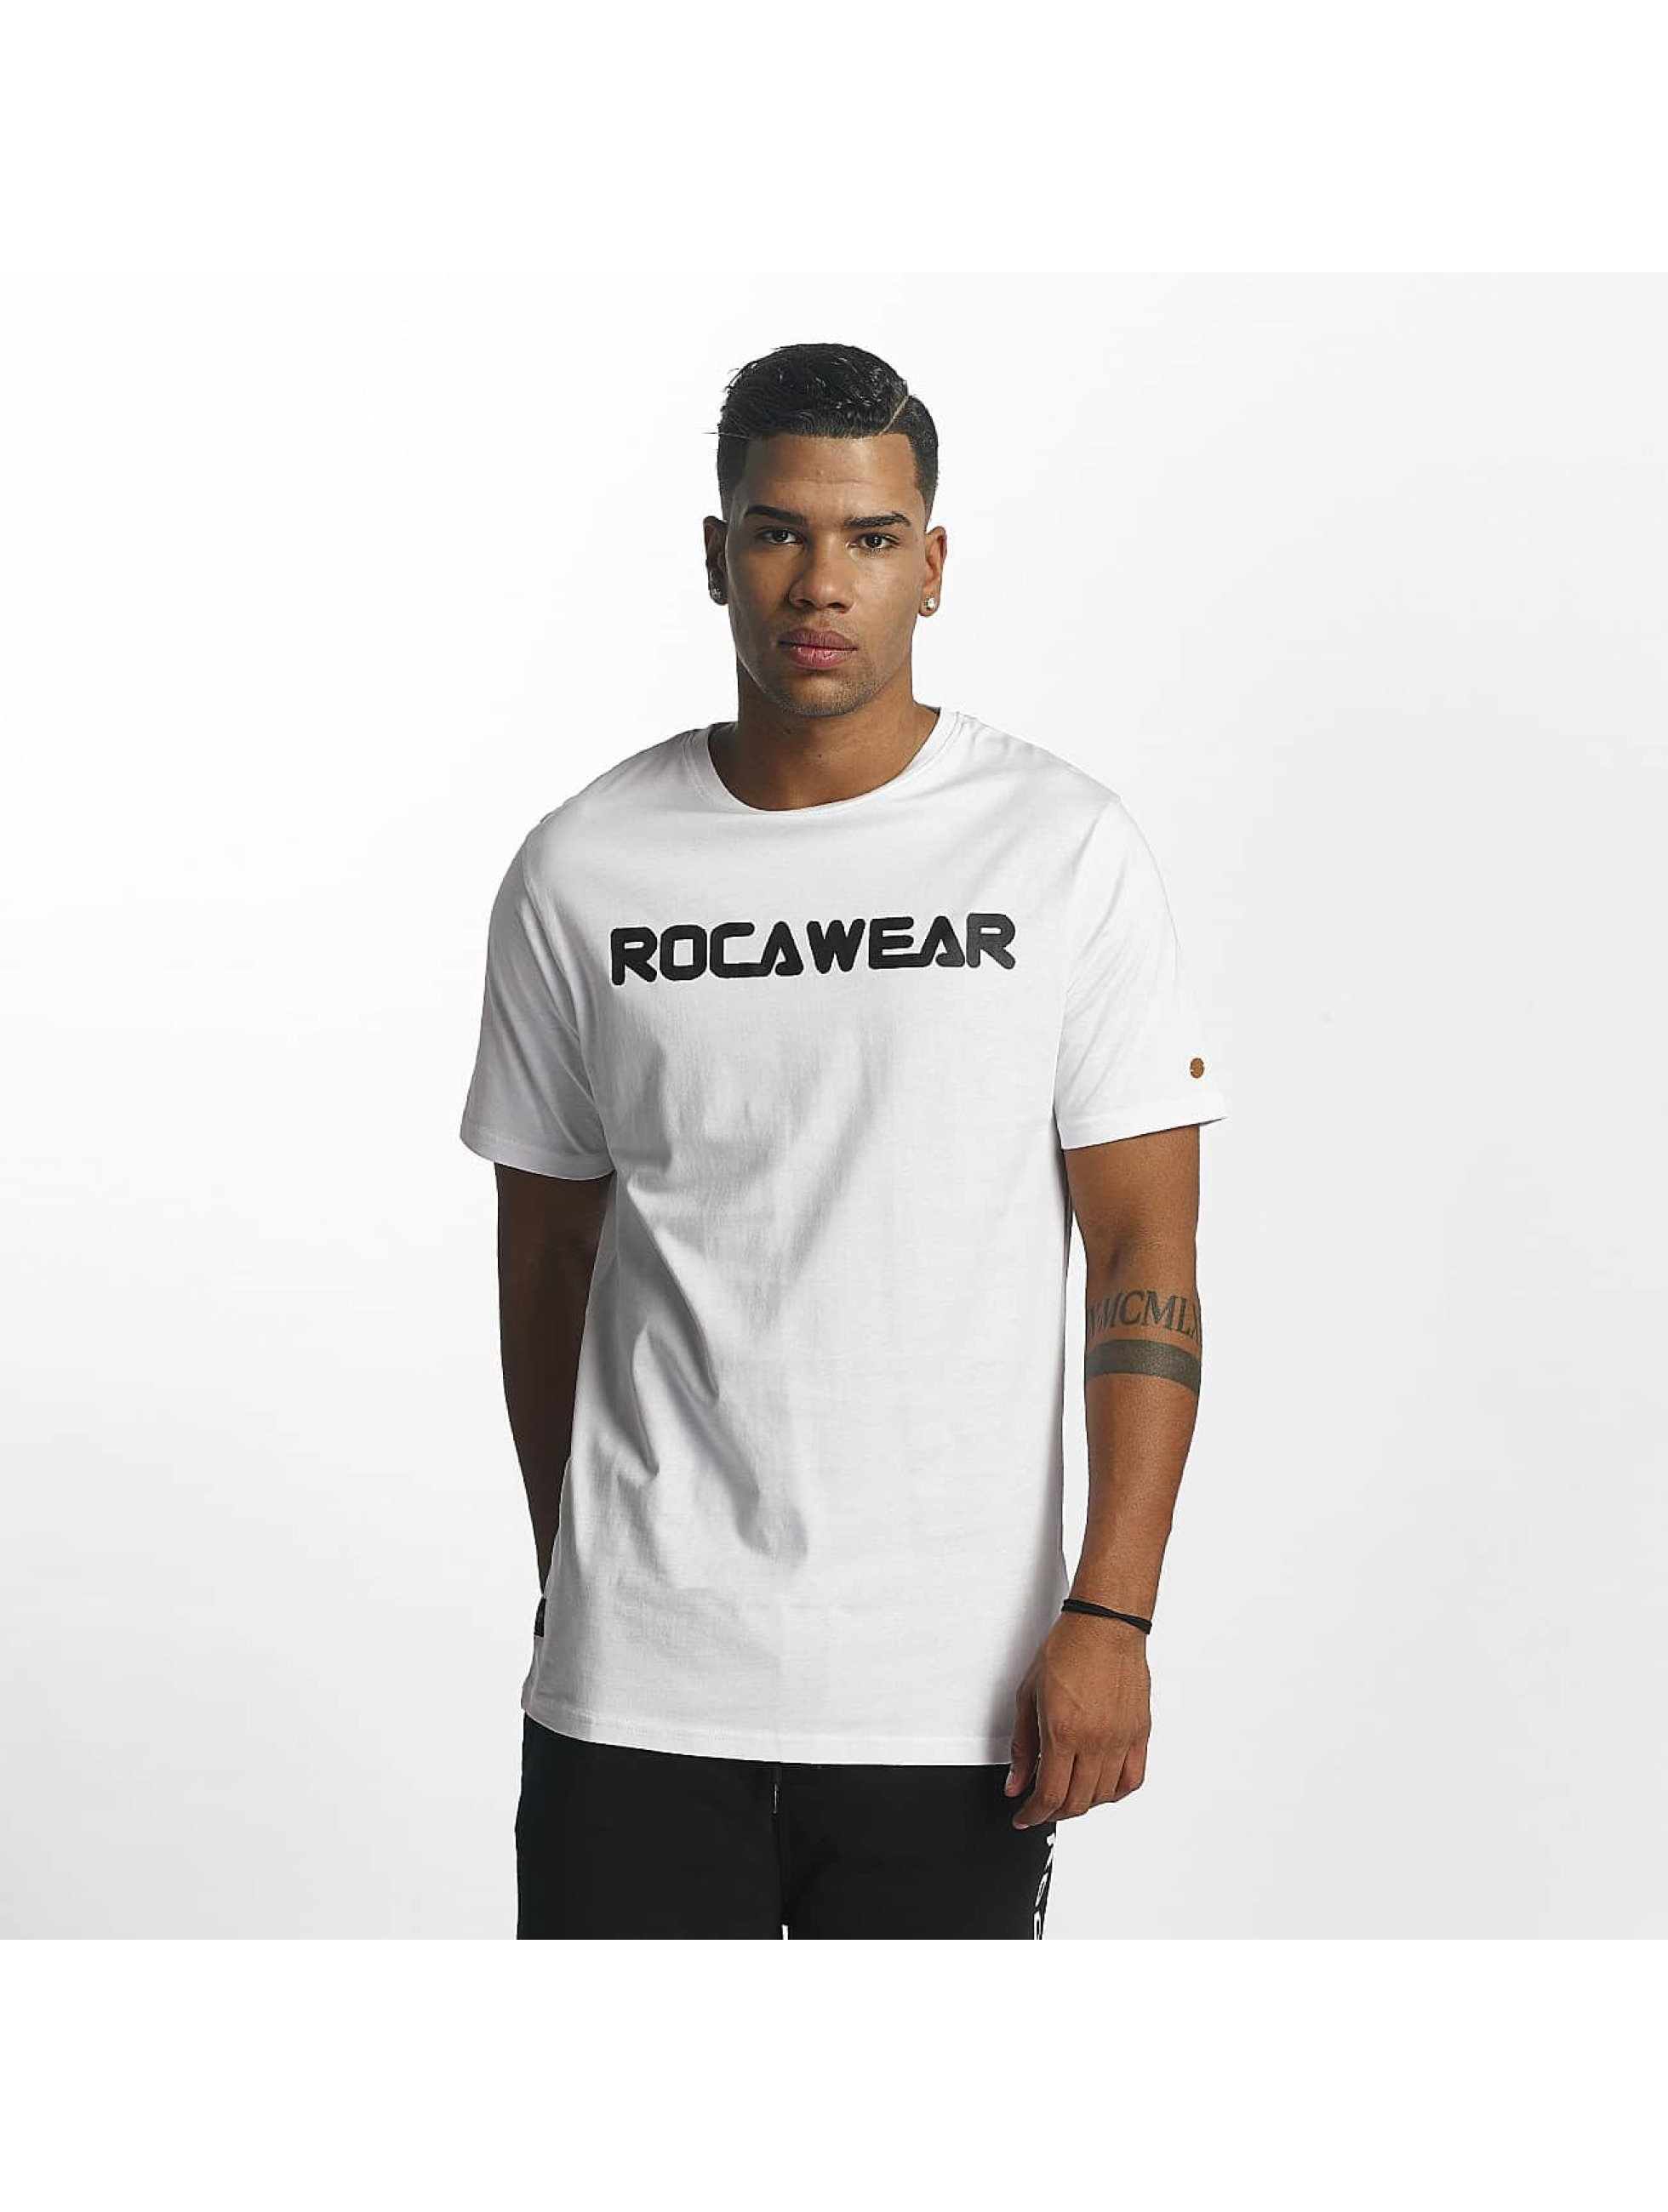 Rocawear / T-Shirt Color in white XL